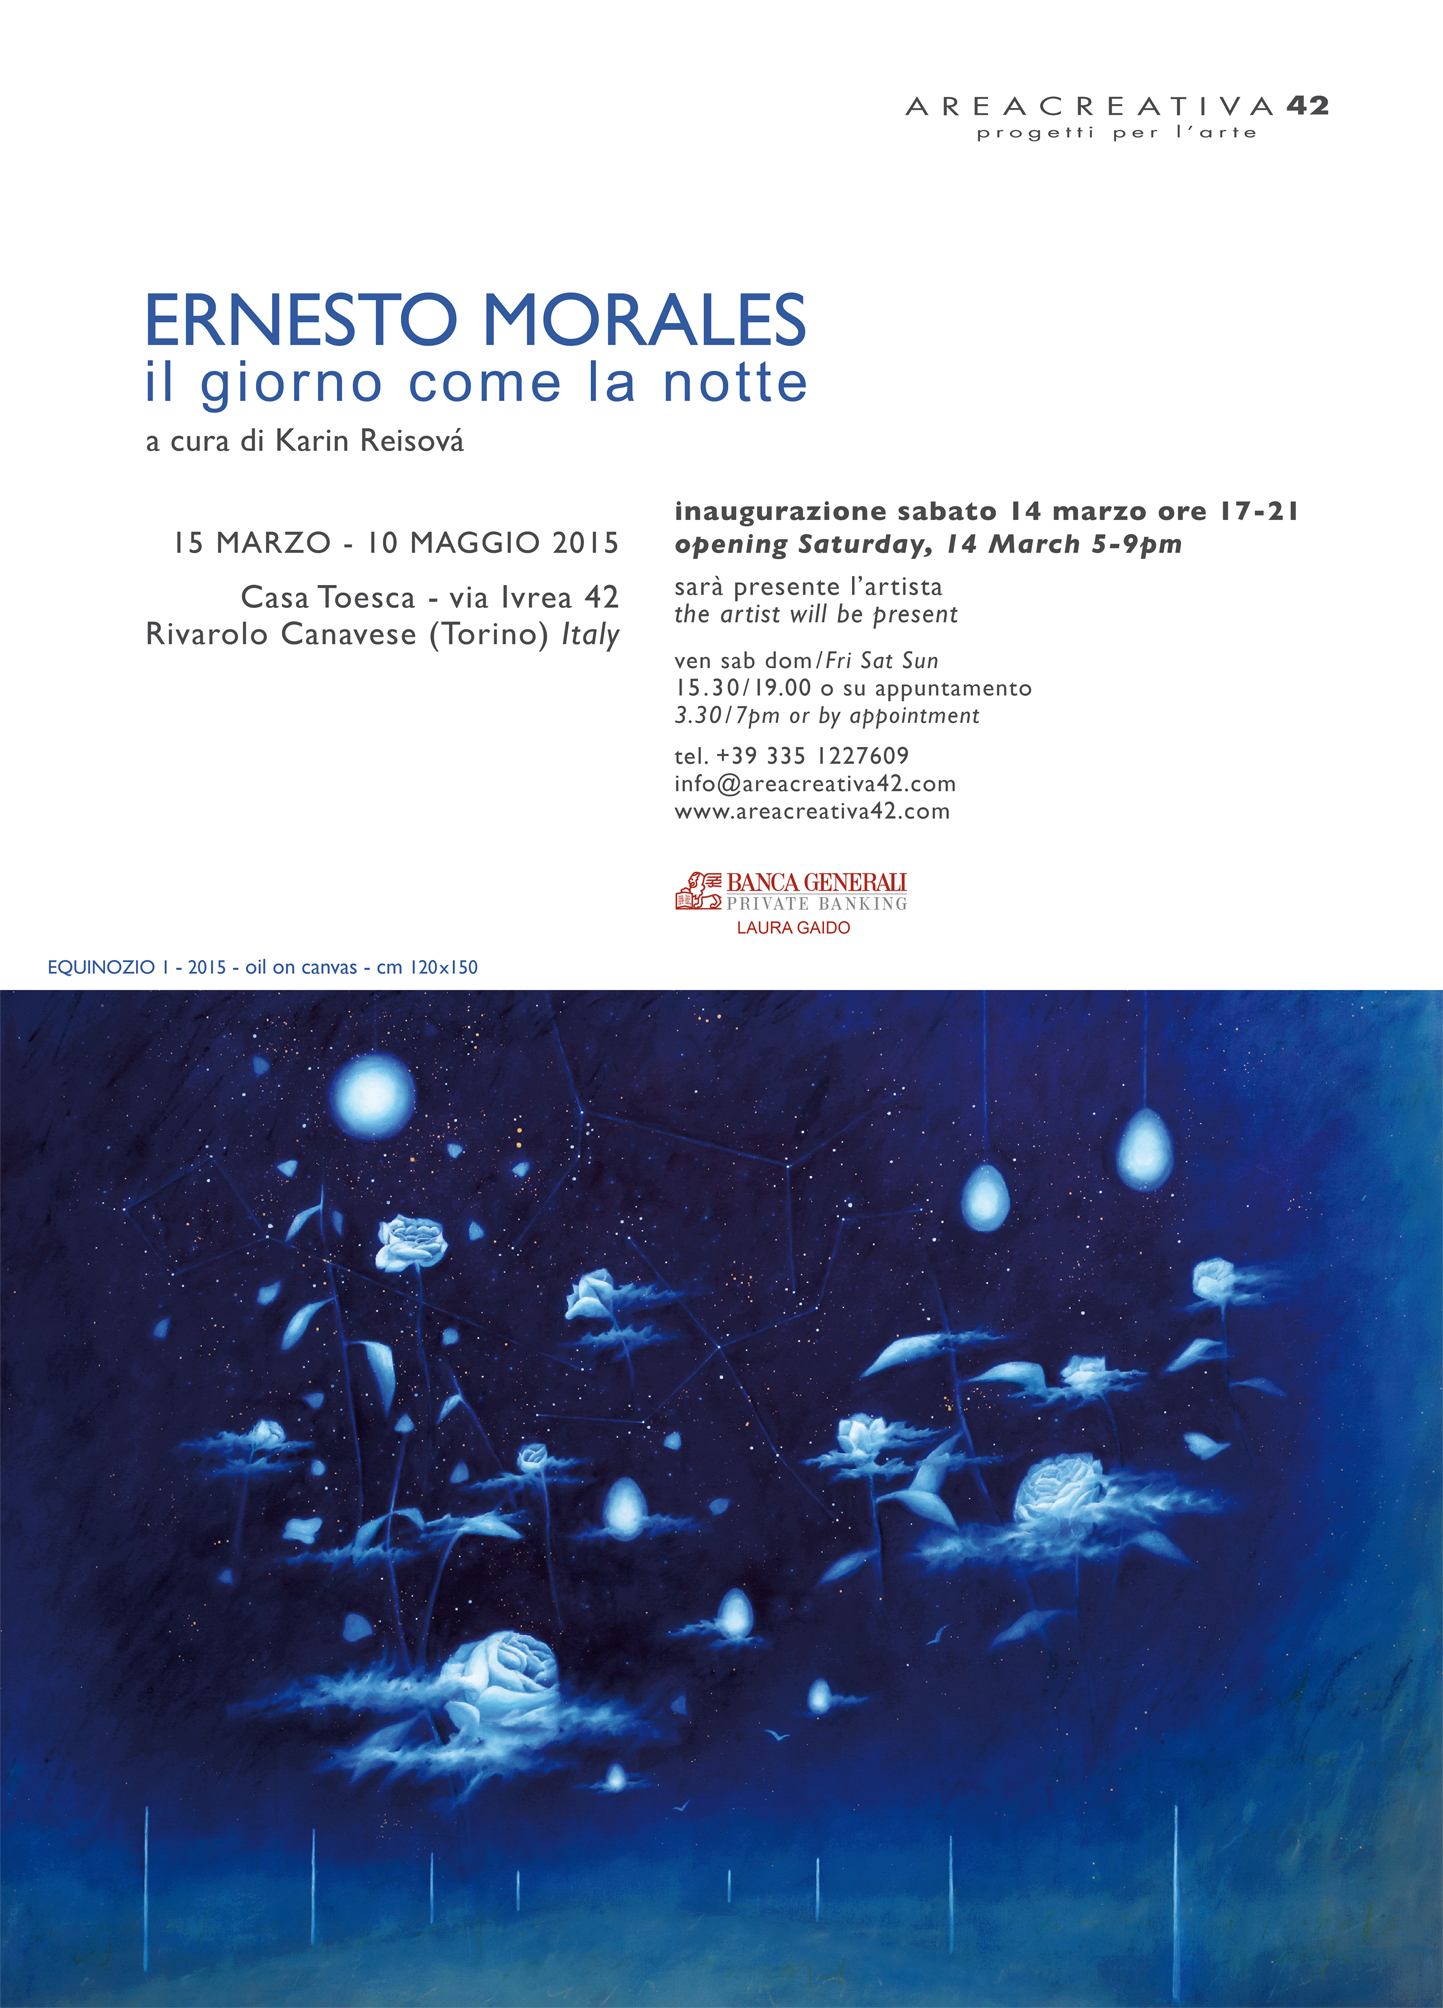 Ernesto Morales - As the day, so the night